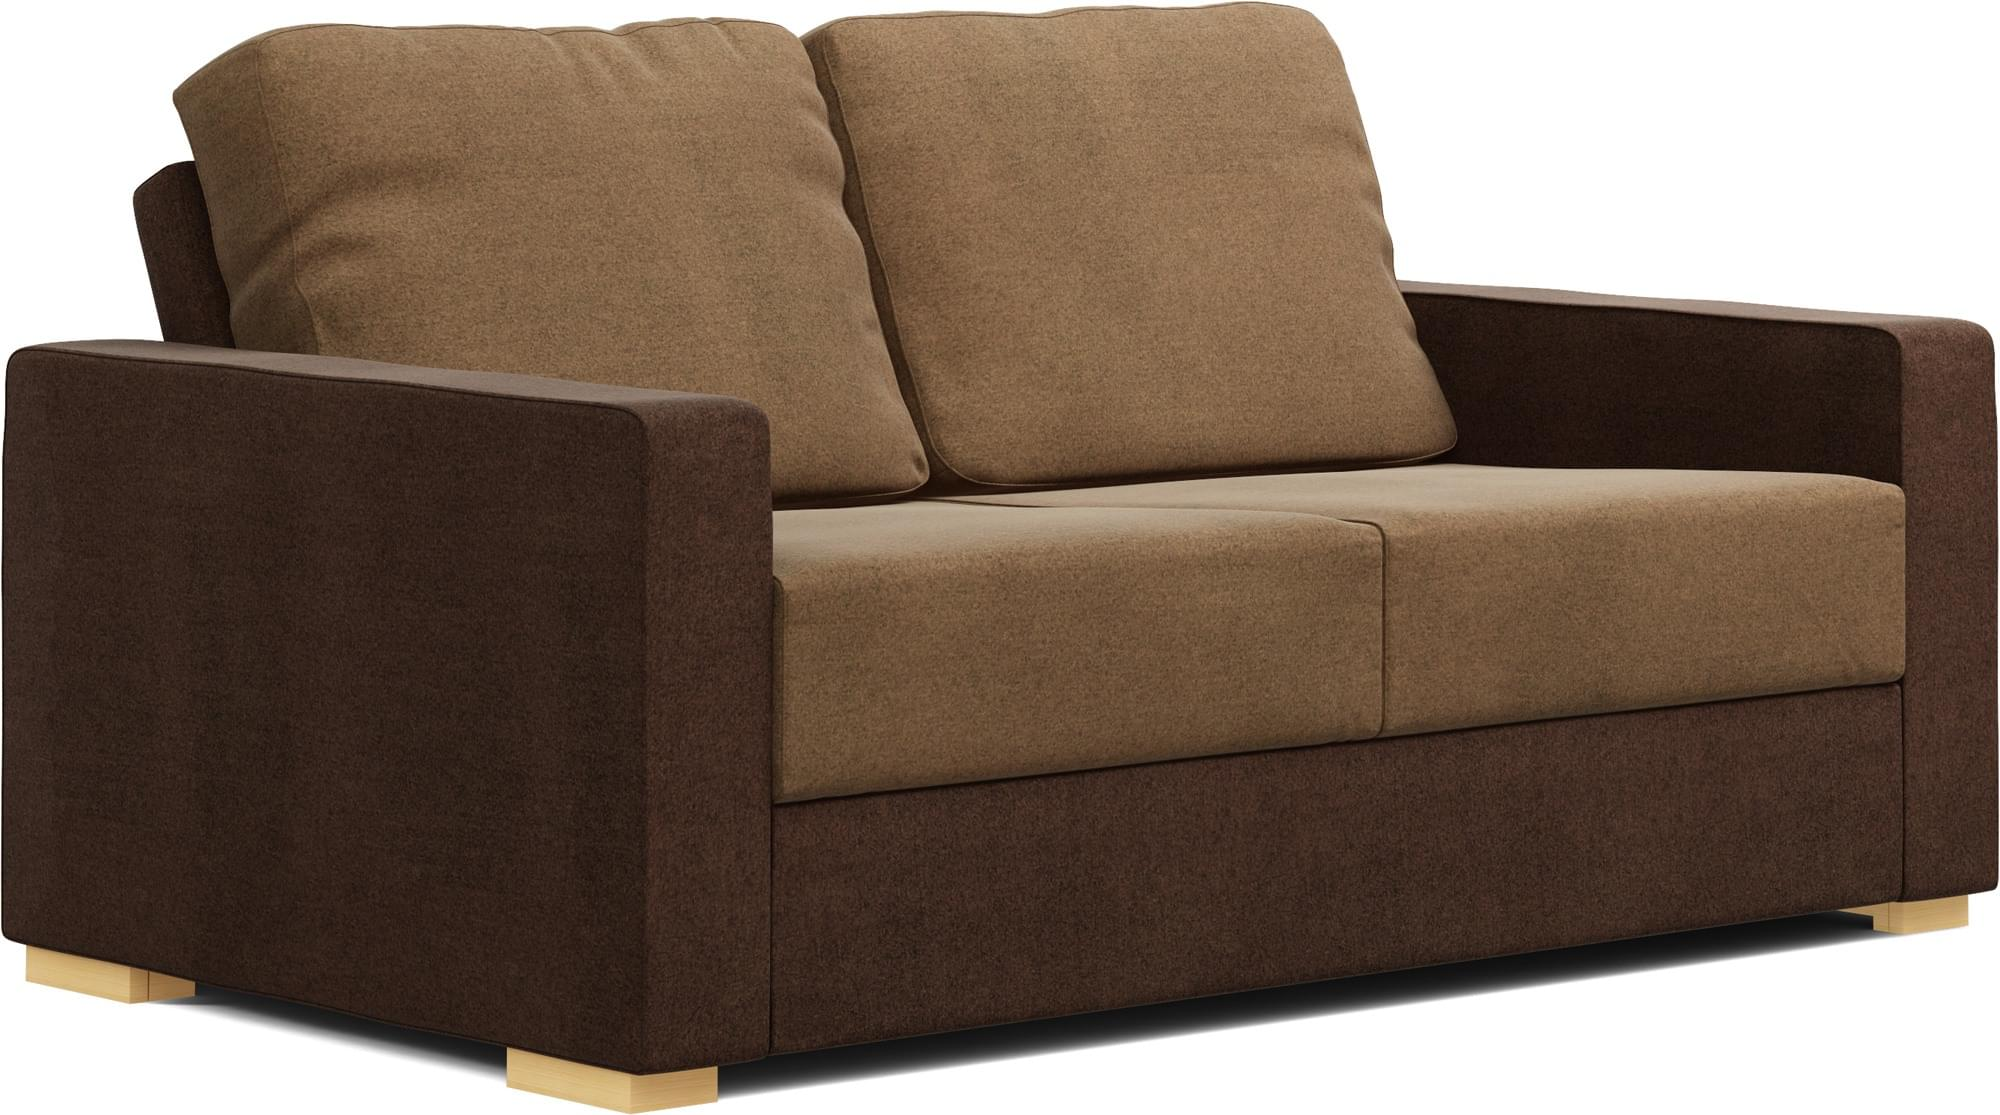 next day sofas customer reviews little girl sofa chair alda small 2 seat double bed nabru